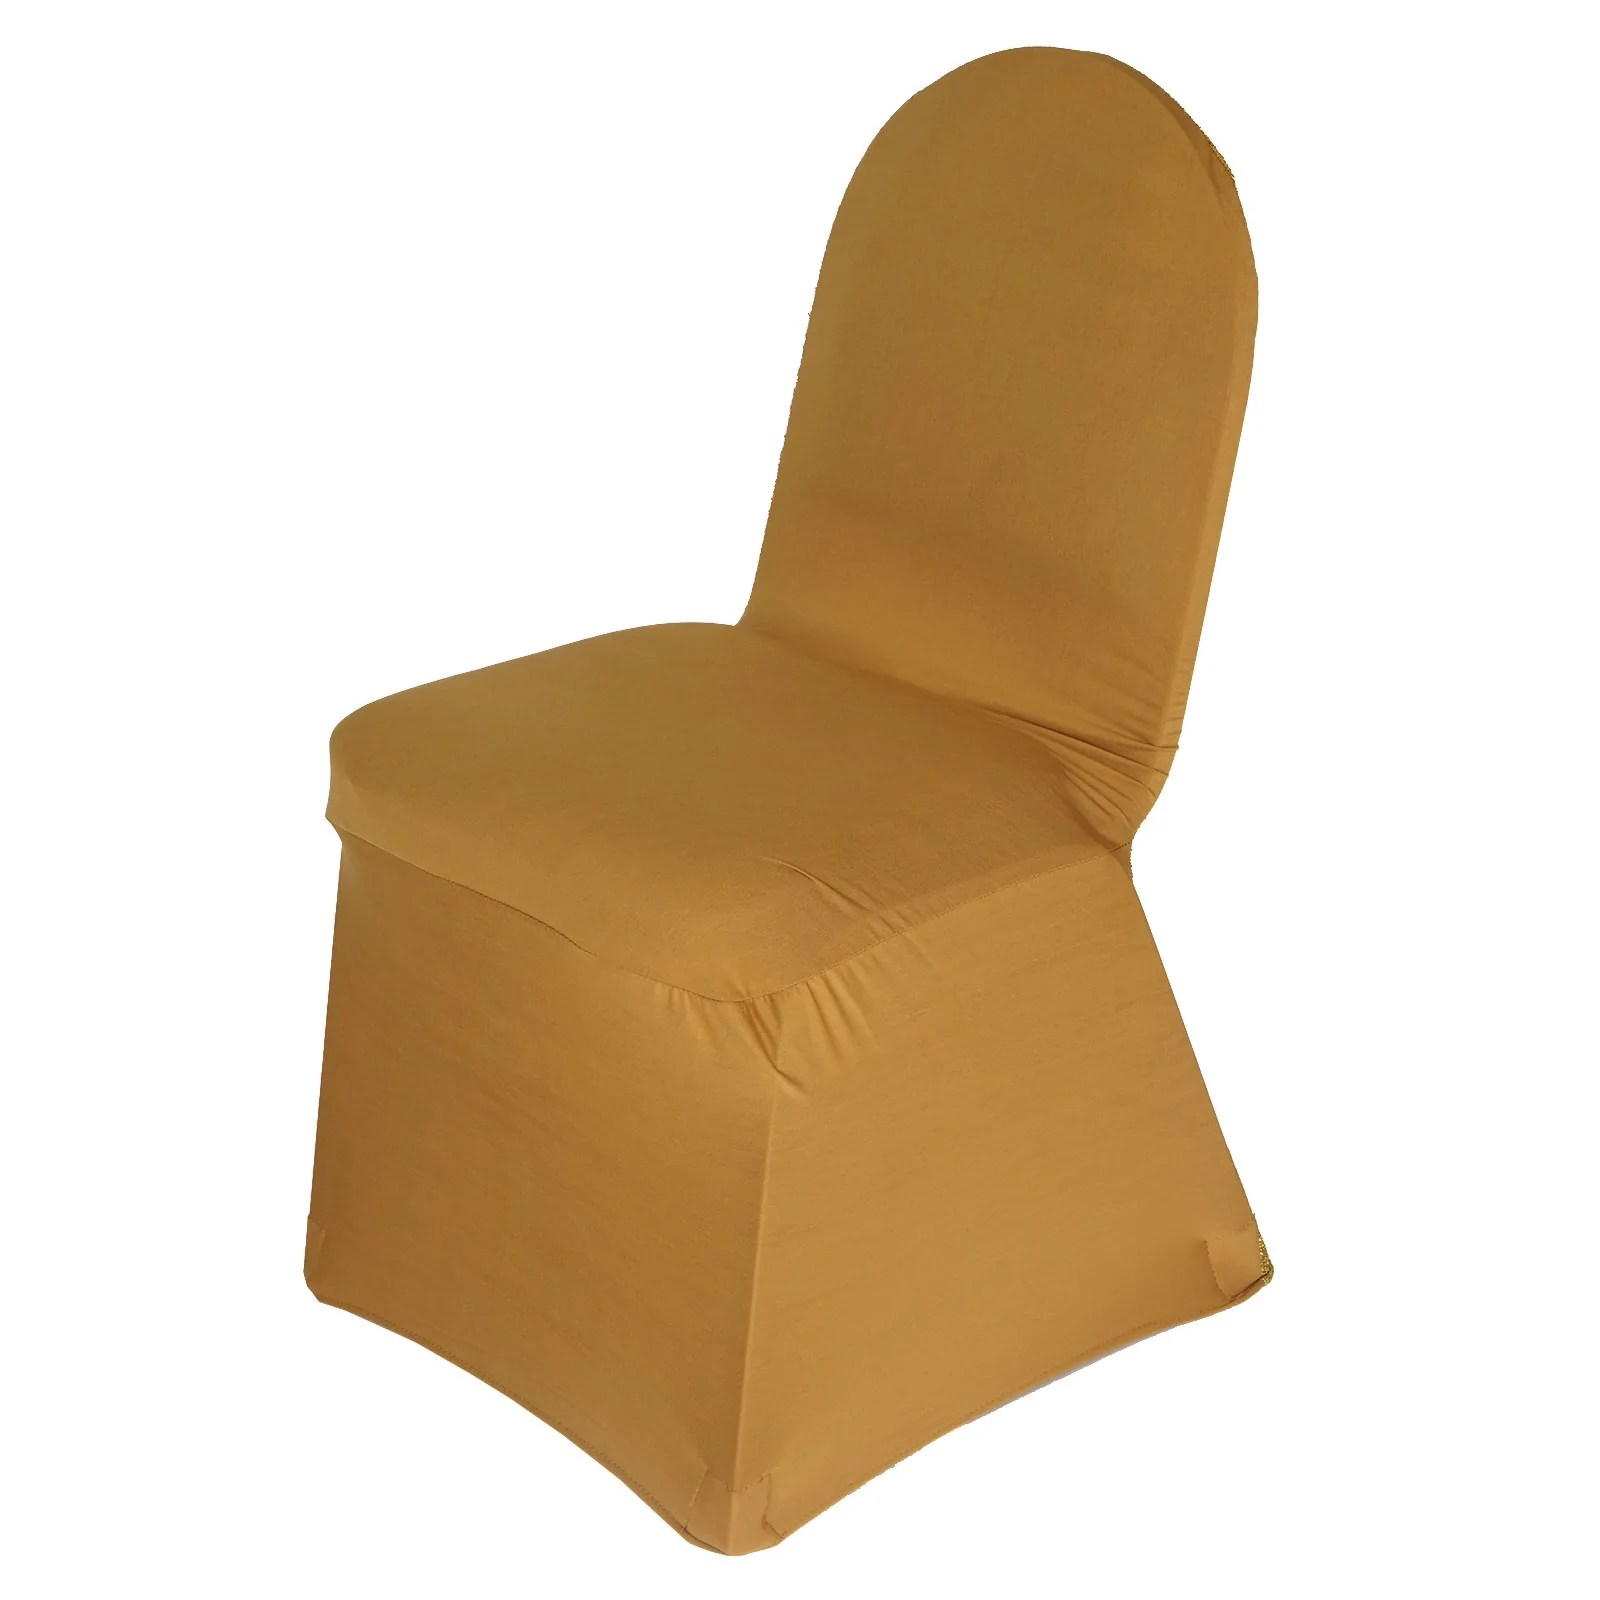 glitter chair covers for sale dining chairs at walmart gold spandex stretch banquet cover with metallic